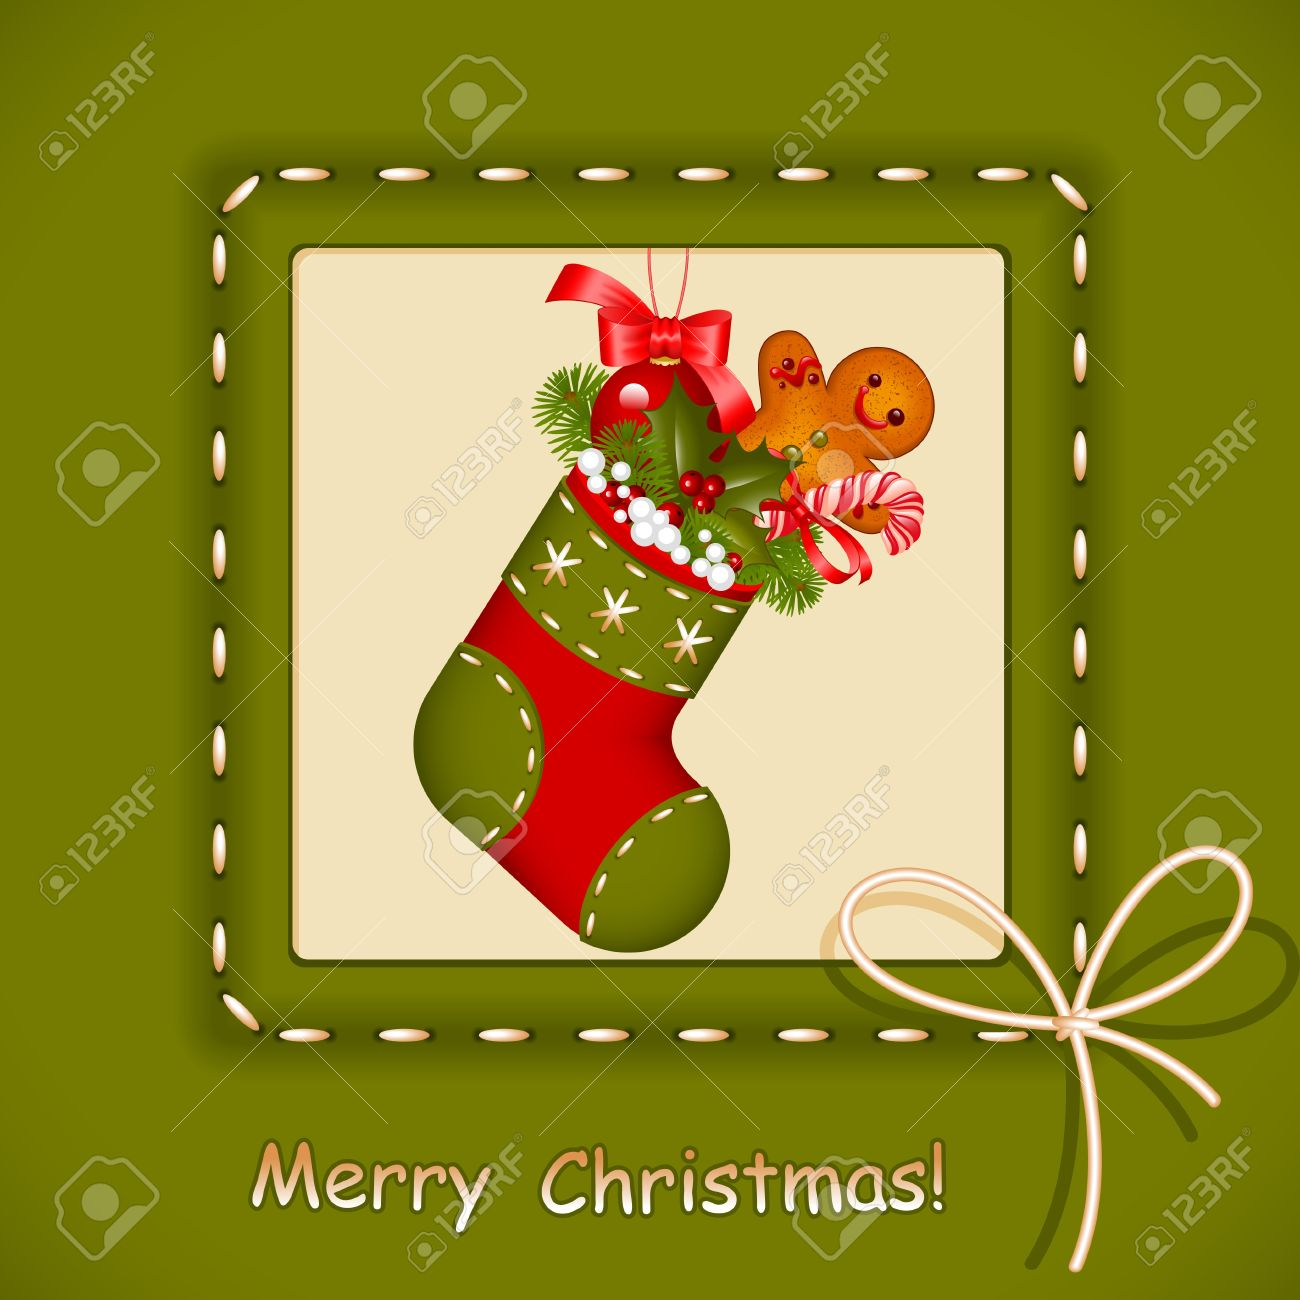 Christmas Card Stocking With Red Ball Christmas Cookies Candy